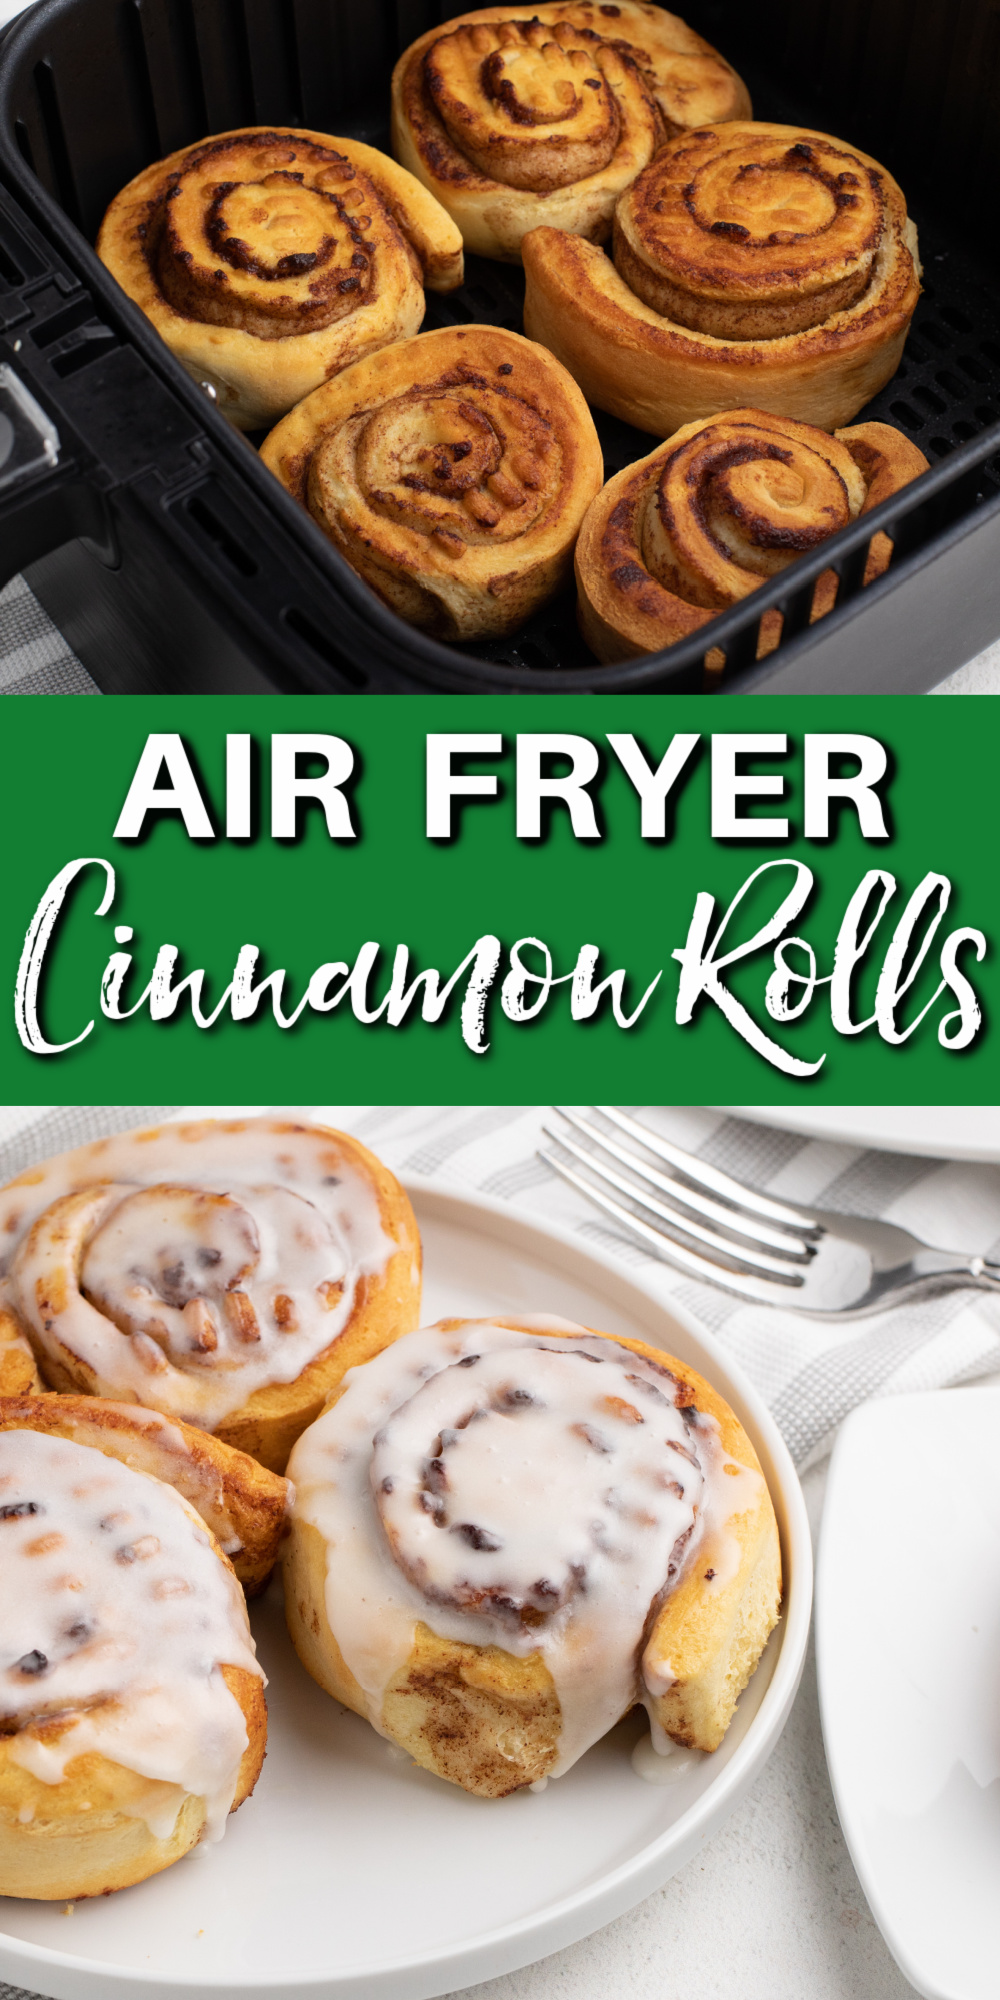 These Easy Air Fryer Cinnamon Rolls are made with Pillsbury Cinnamon Rolls and are a quick and easy breakfast made in the Air Fryer. You'll have breakfast on the table in less than 10 minutes with this easy Air Fryer recipe.